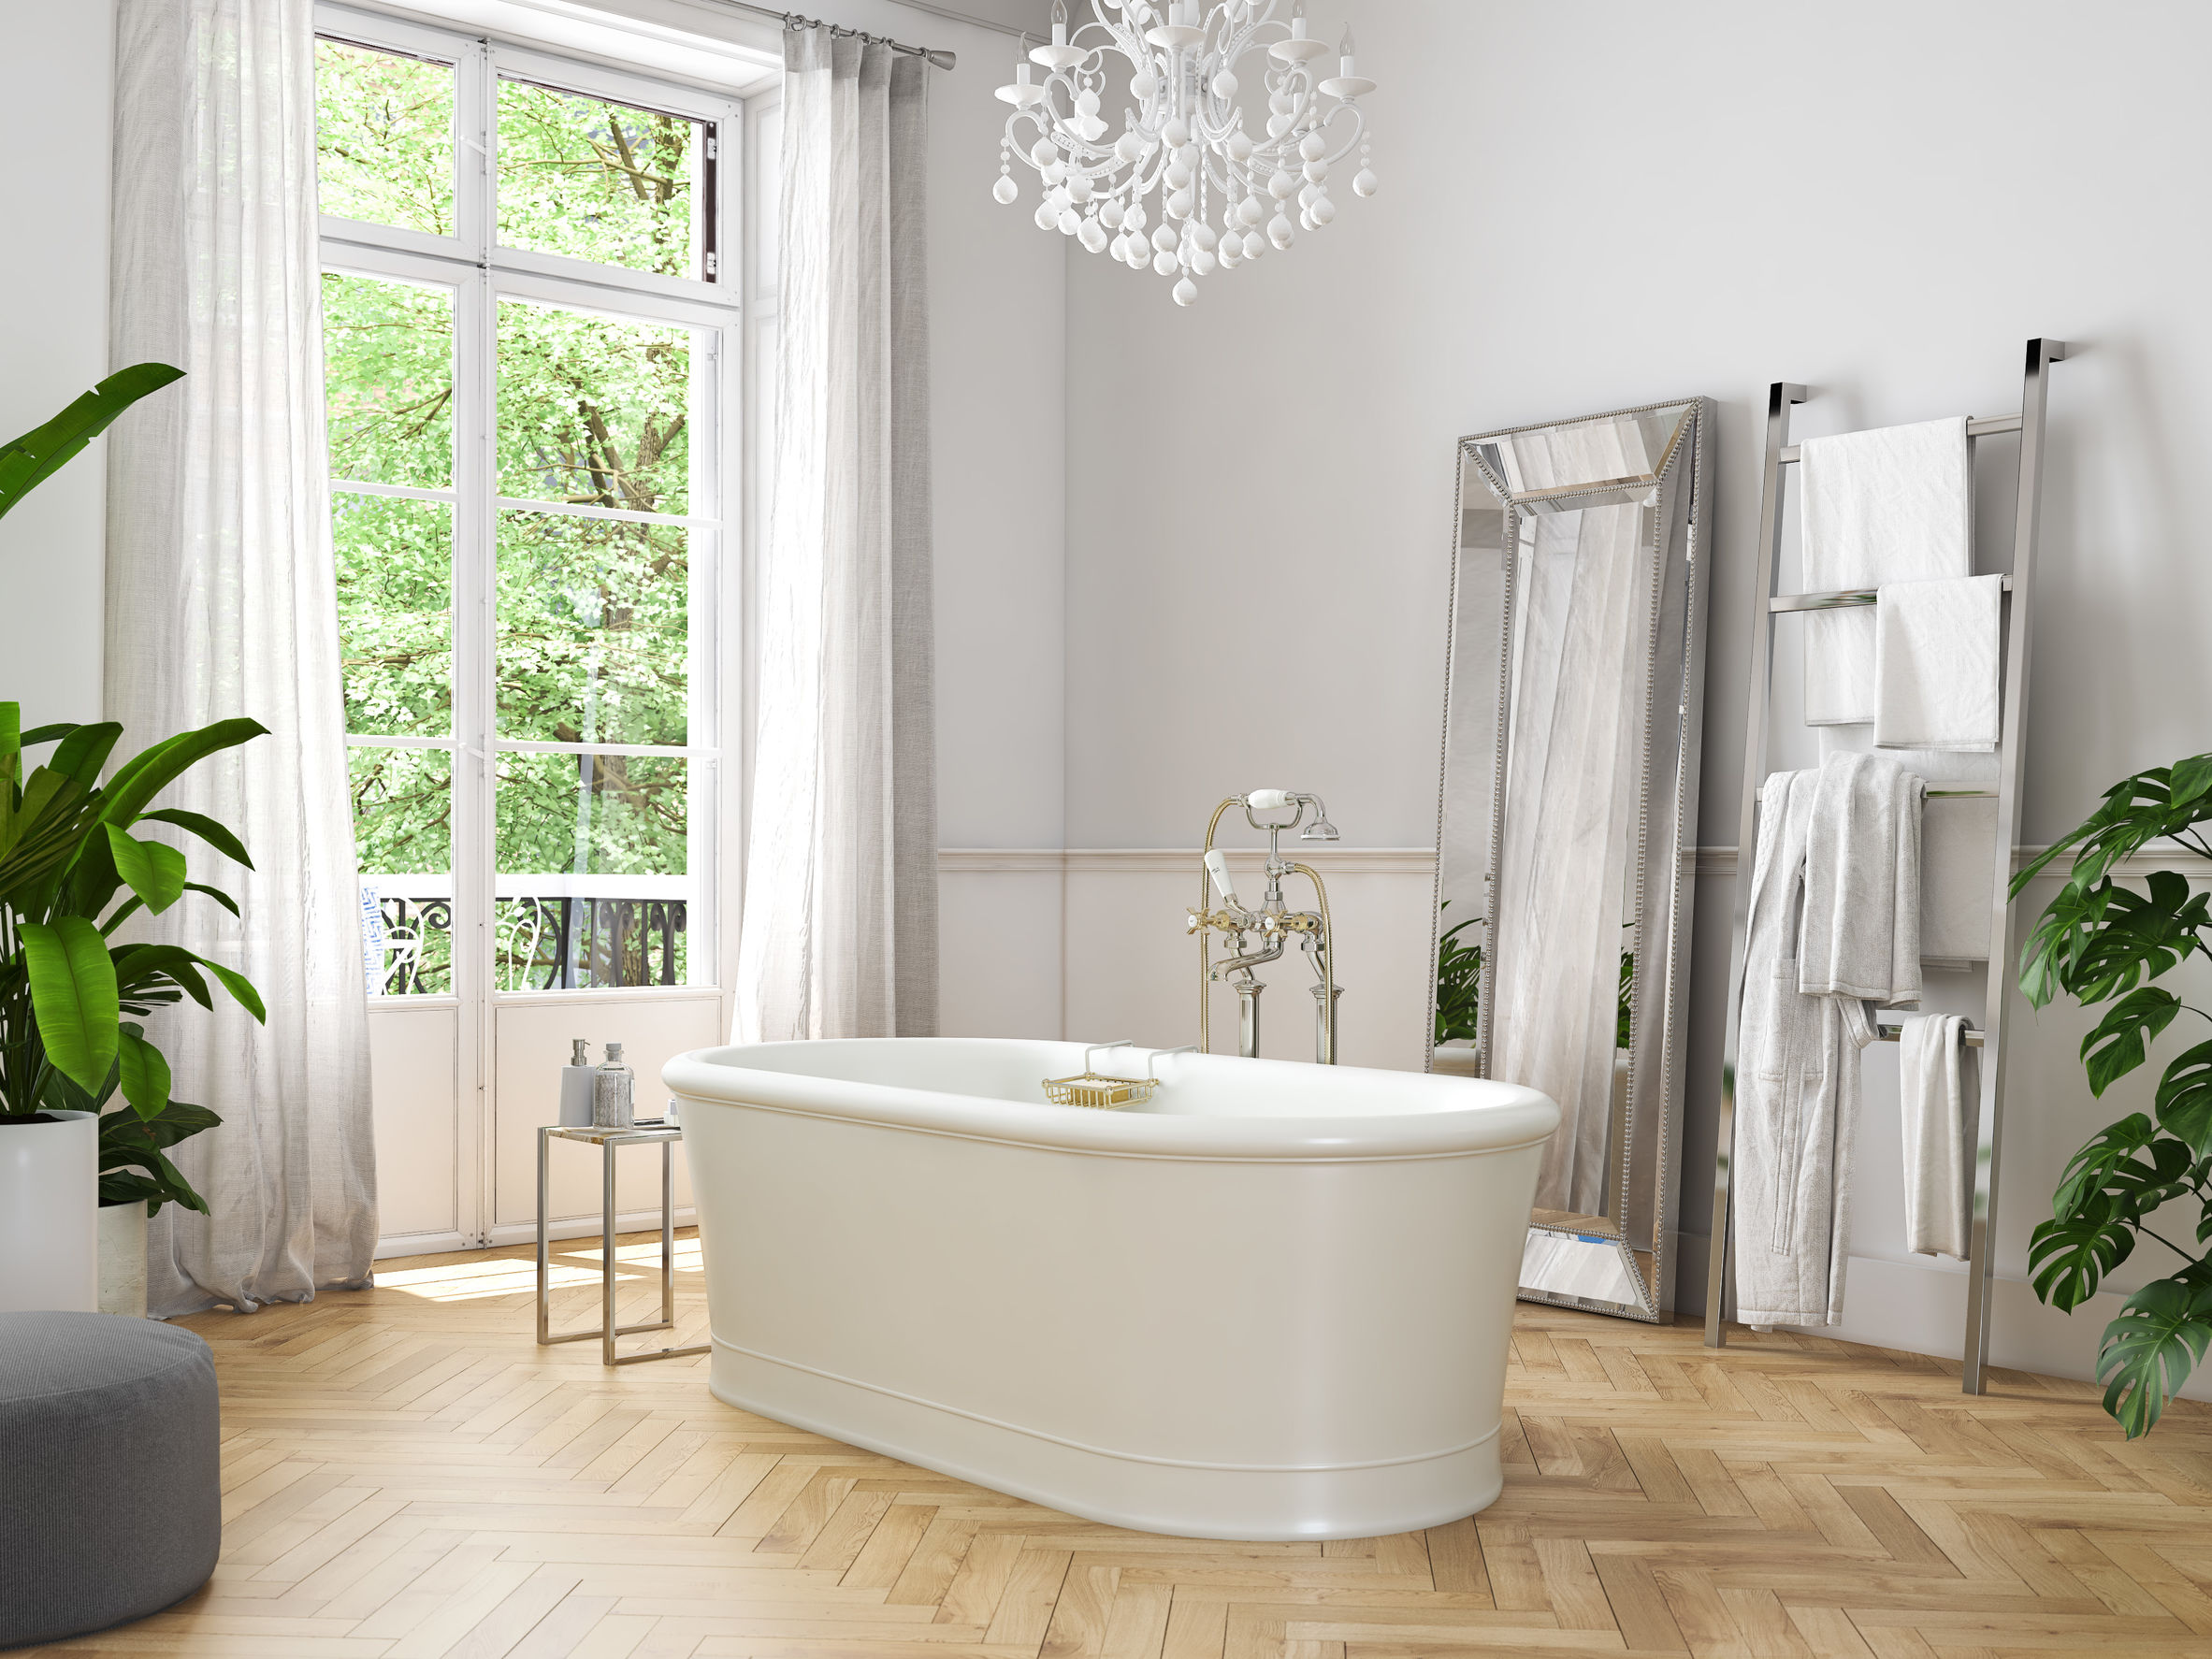 Bathroom trends to stay away from